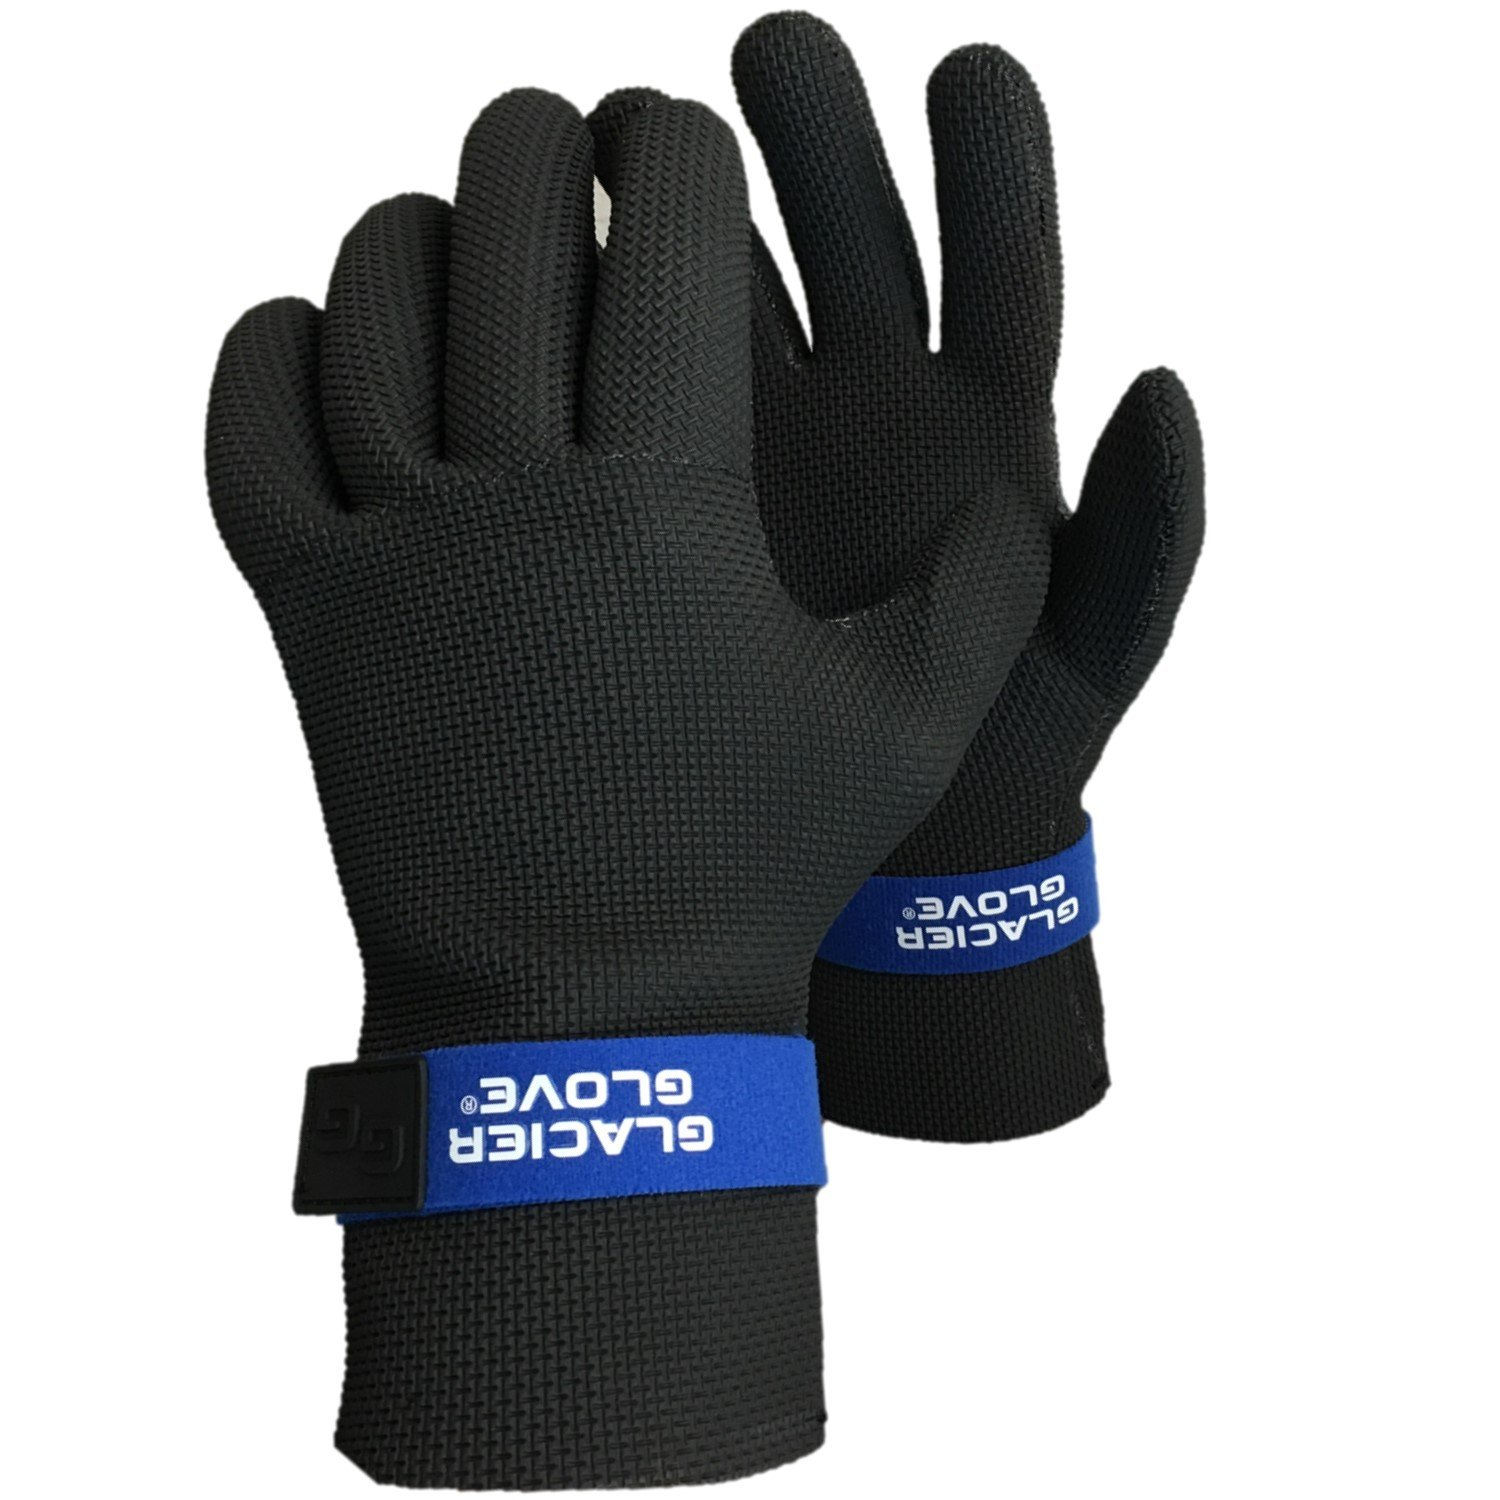 Glacier Glove Kenai Waterproof Glove, Black, Small